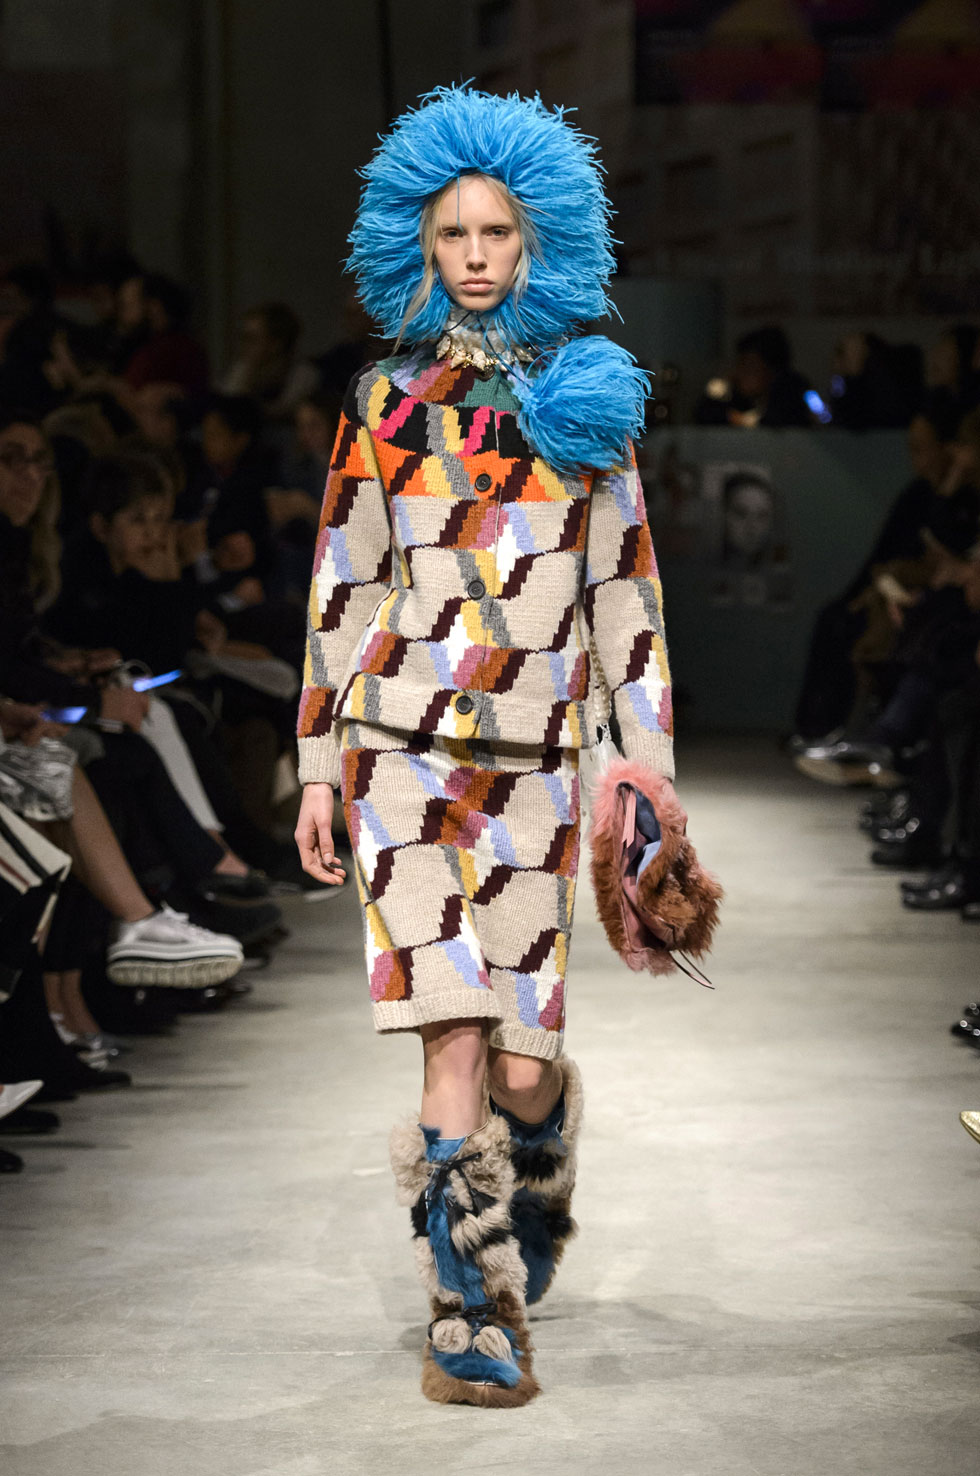 elle-mfw-fw17-collections-prada-23-imaxtree